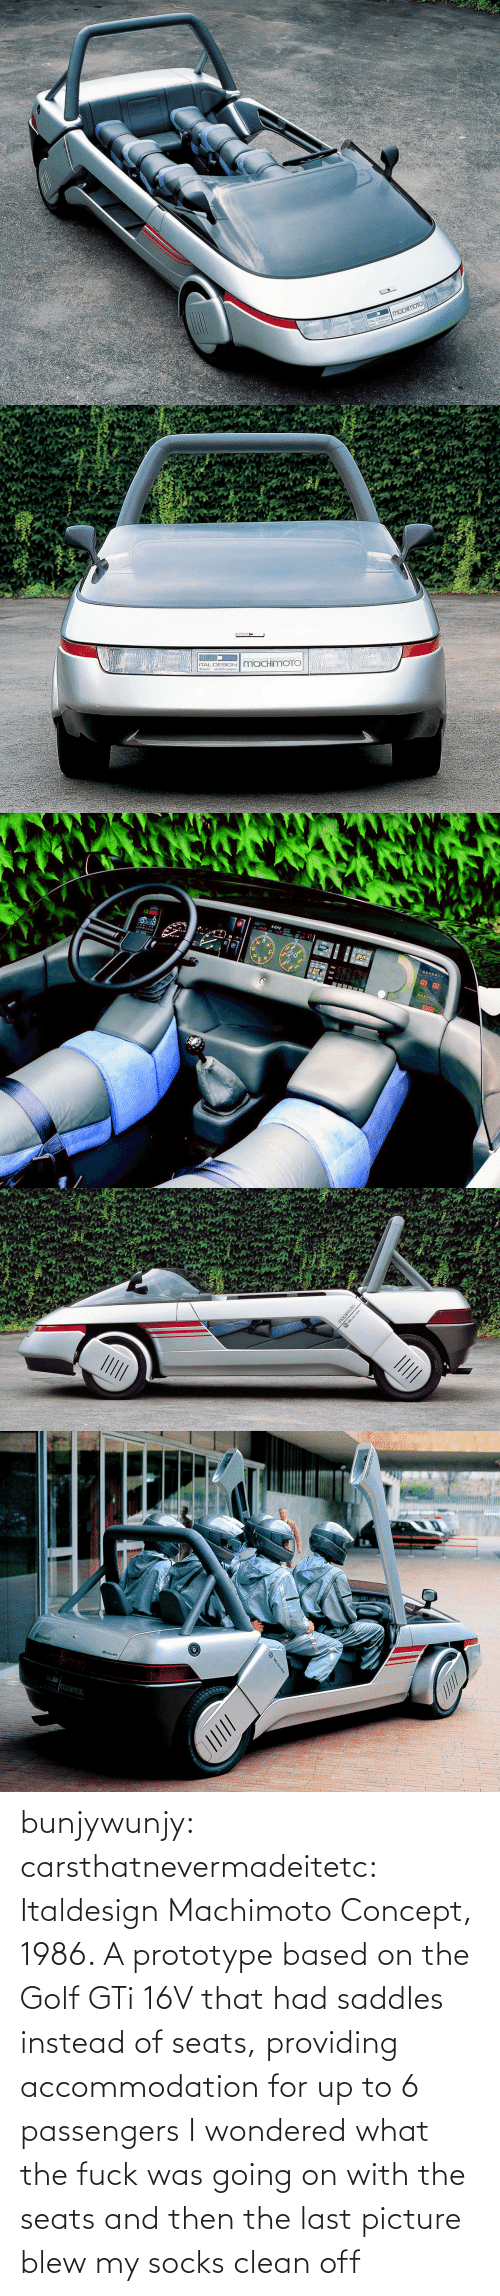 Instead Of: bunjywunjy:  carsthatnevermadeitetc:  Italdesign Machimoto Concept, 1986. A prototype based on the Golf GTi 16V that had saddles instead of seats, providing accommodation for up to 6 passengers   I wondered what the fuck was going on with the seats and then the last picture blew my socks clean off